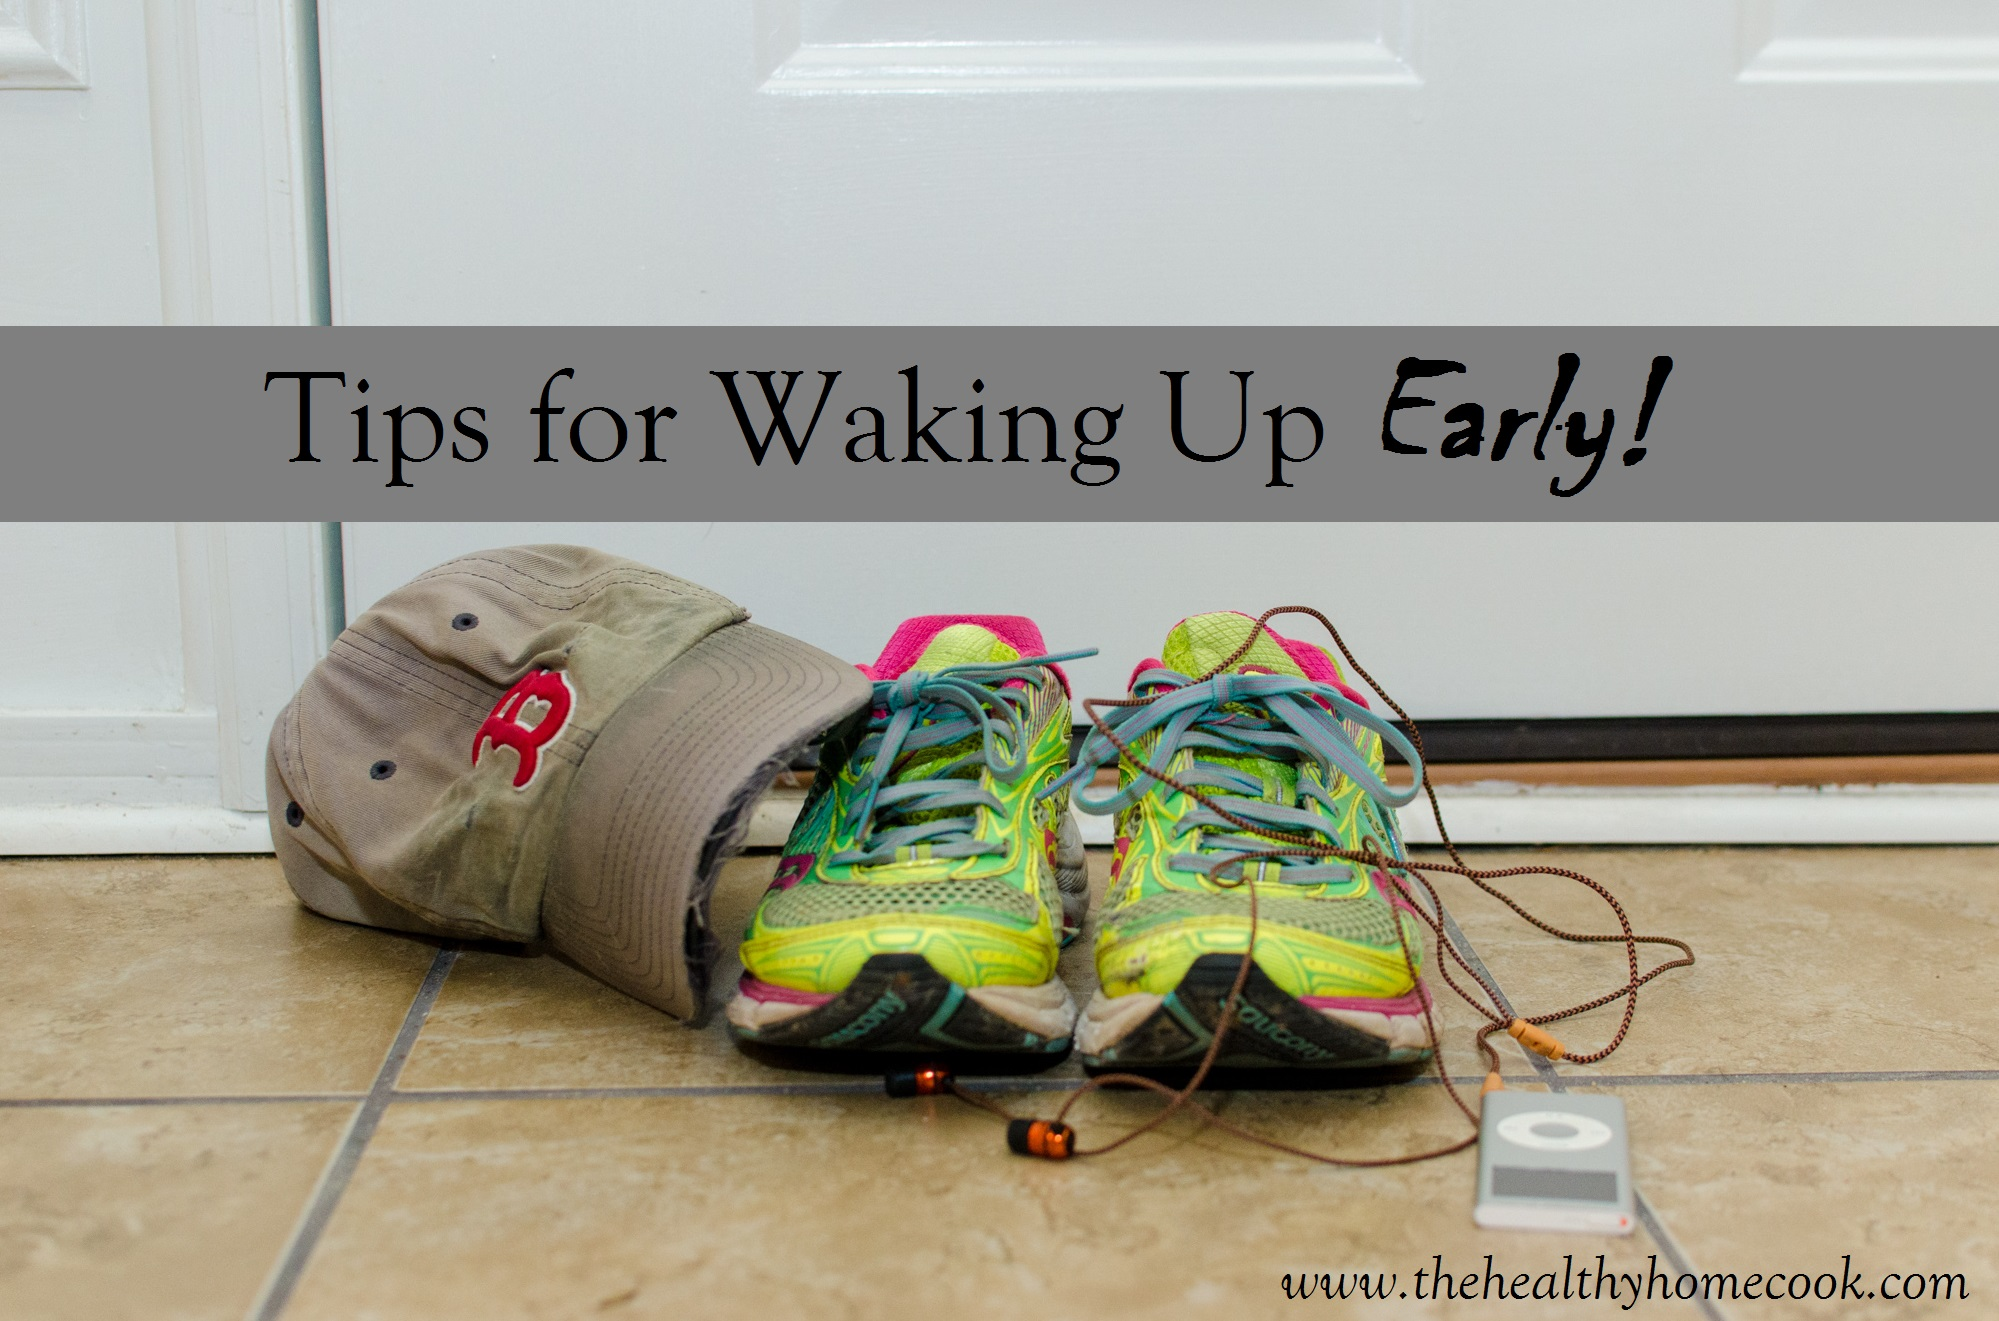 You may not be able to wake up early every morning, but here are a few tips that may help you squeeze that workout in. Rise and Shine!!